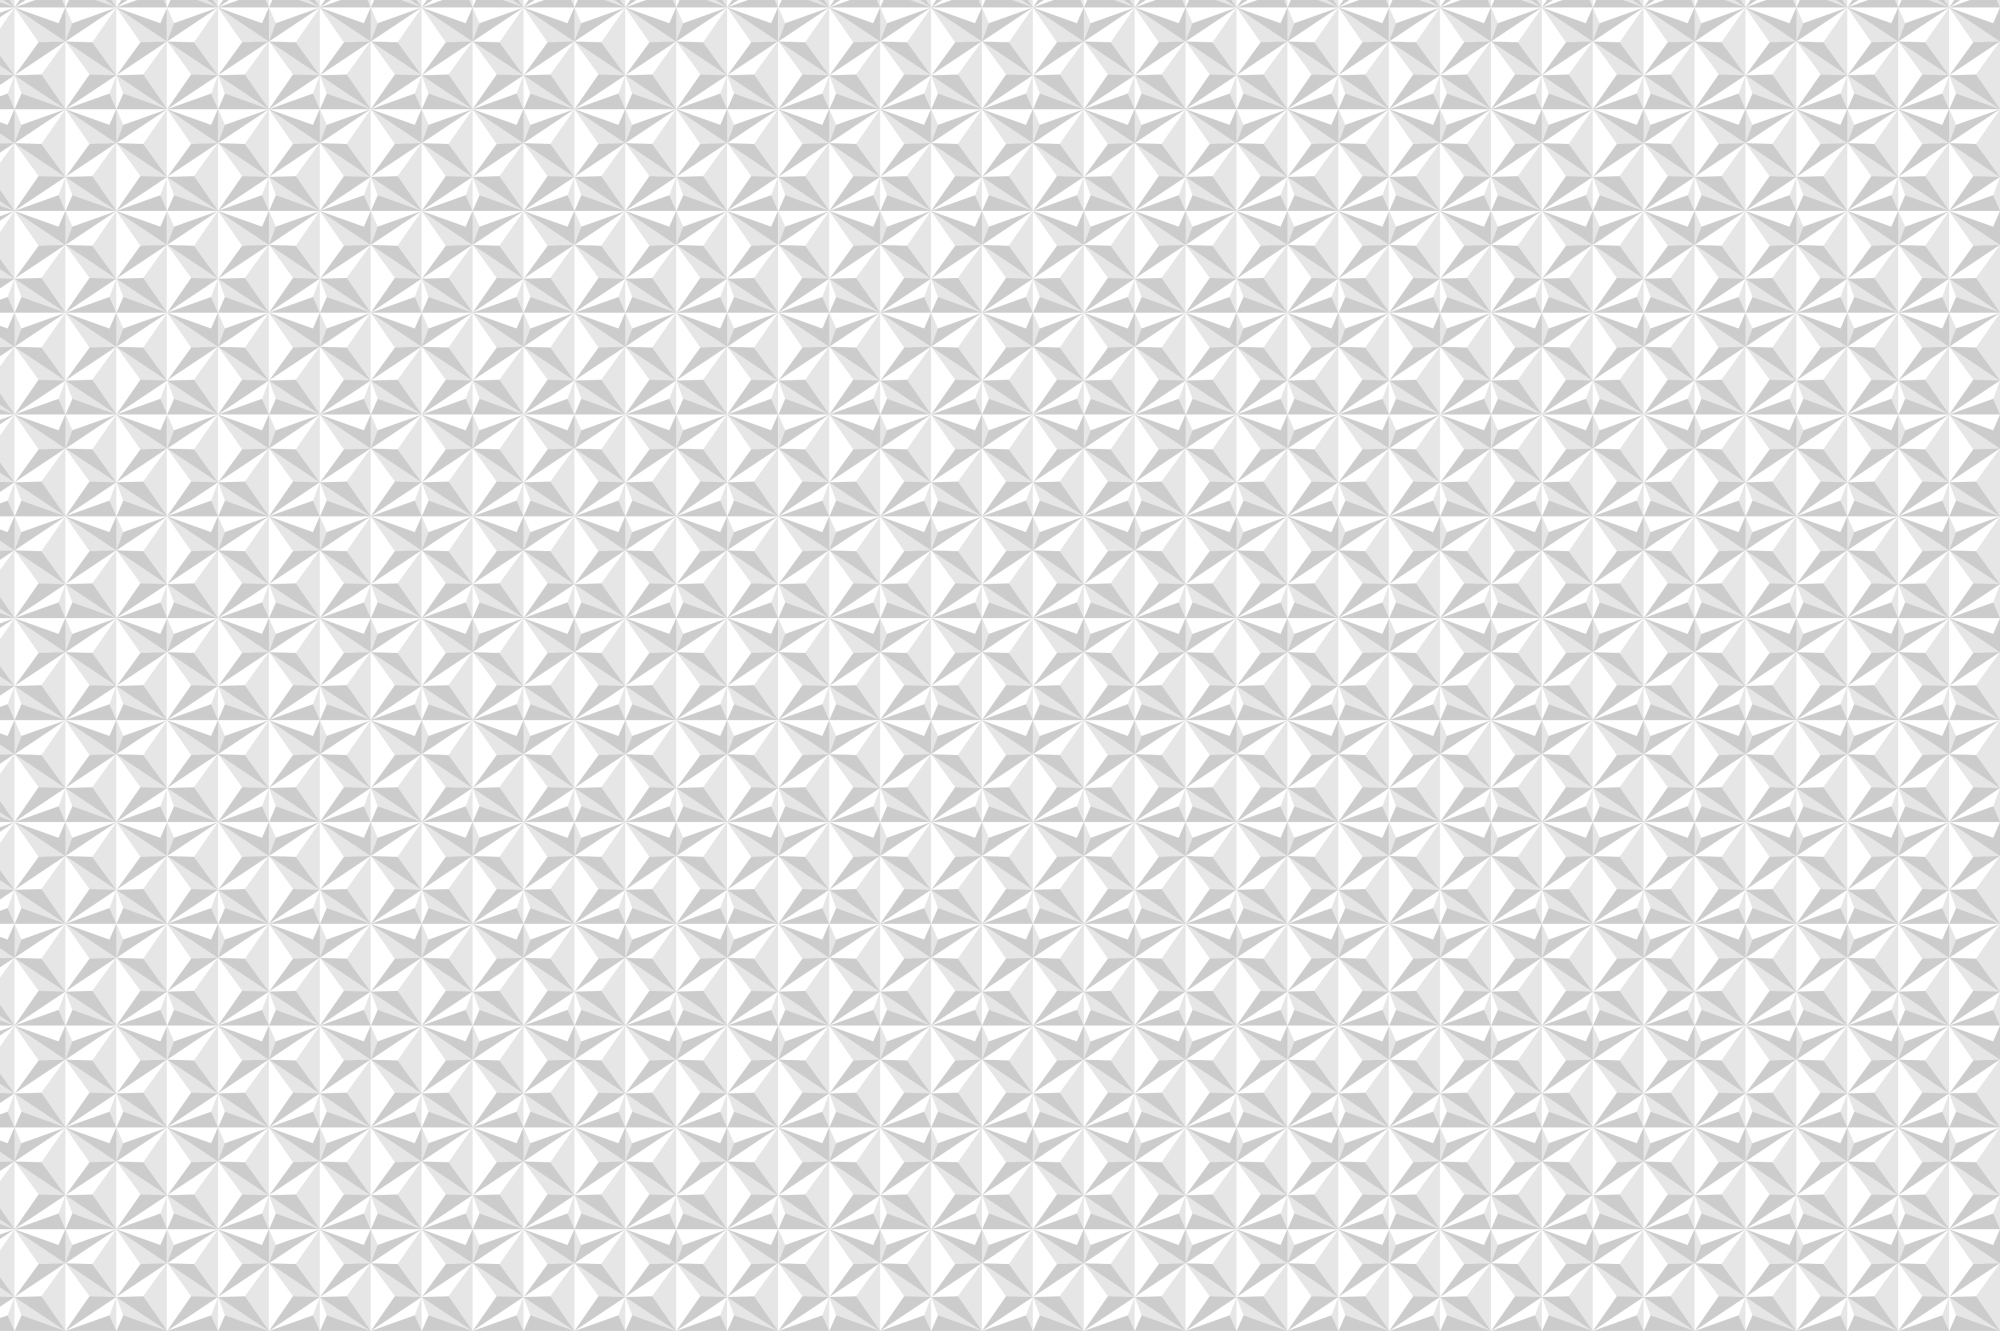 Seamless White 3d Textures. Swatches example image 7